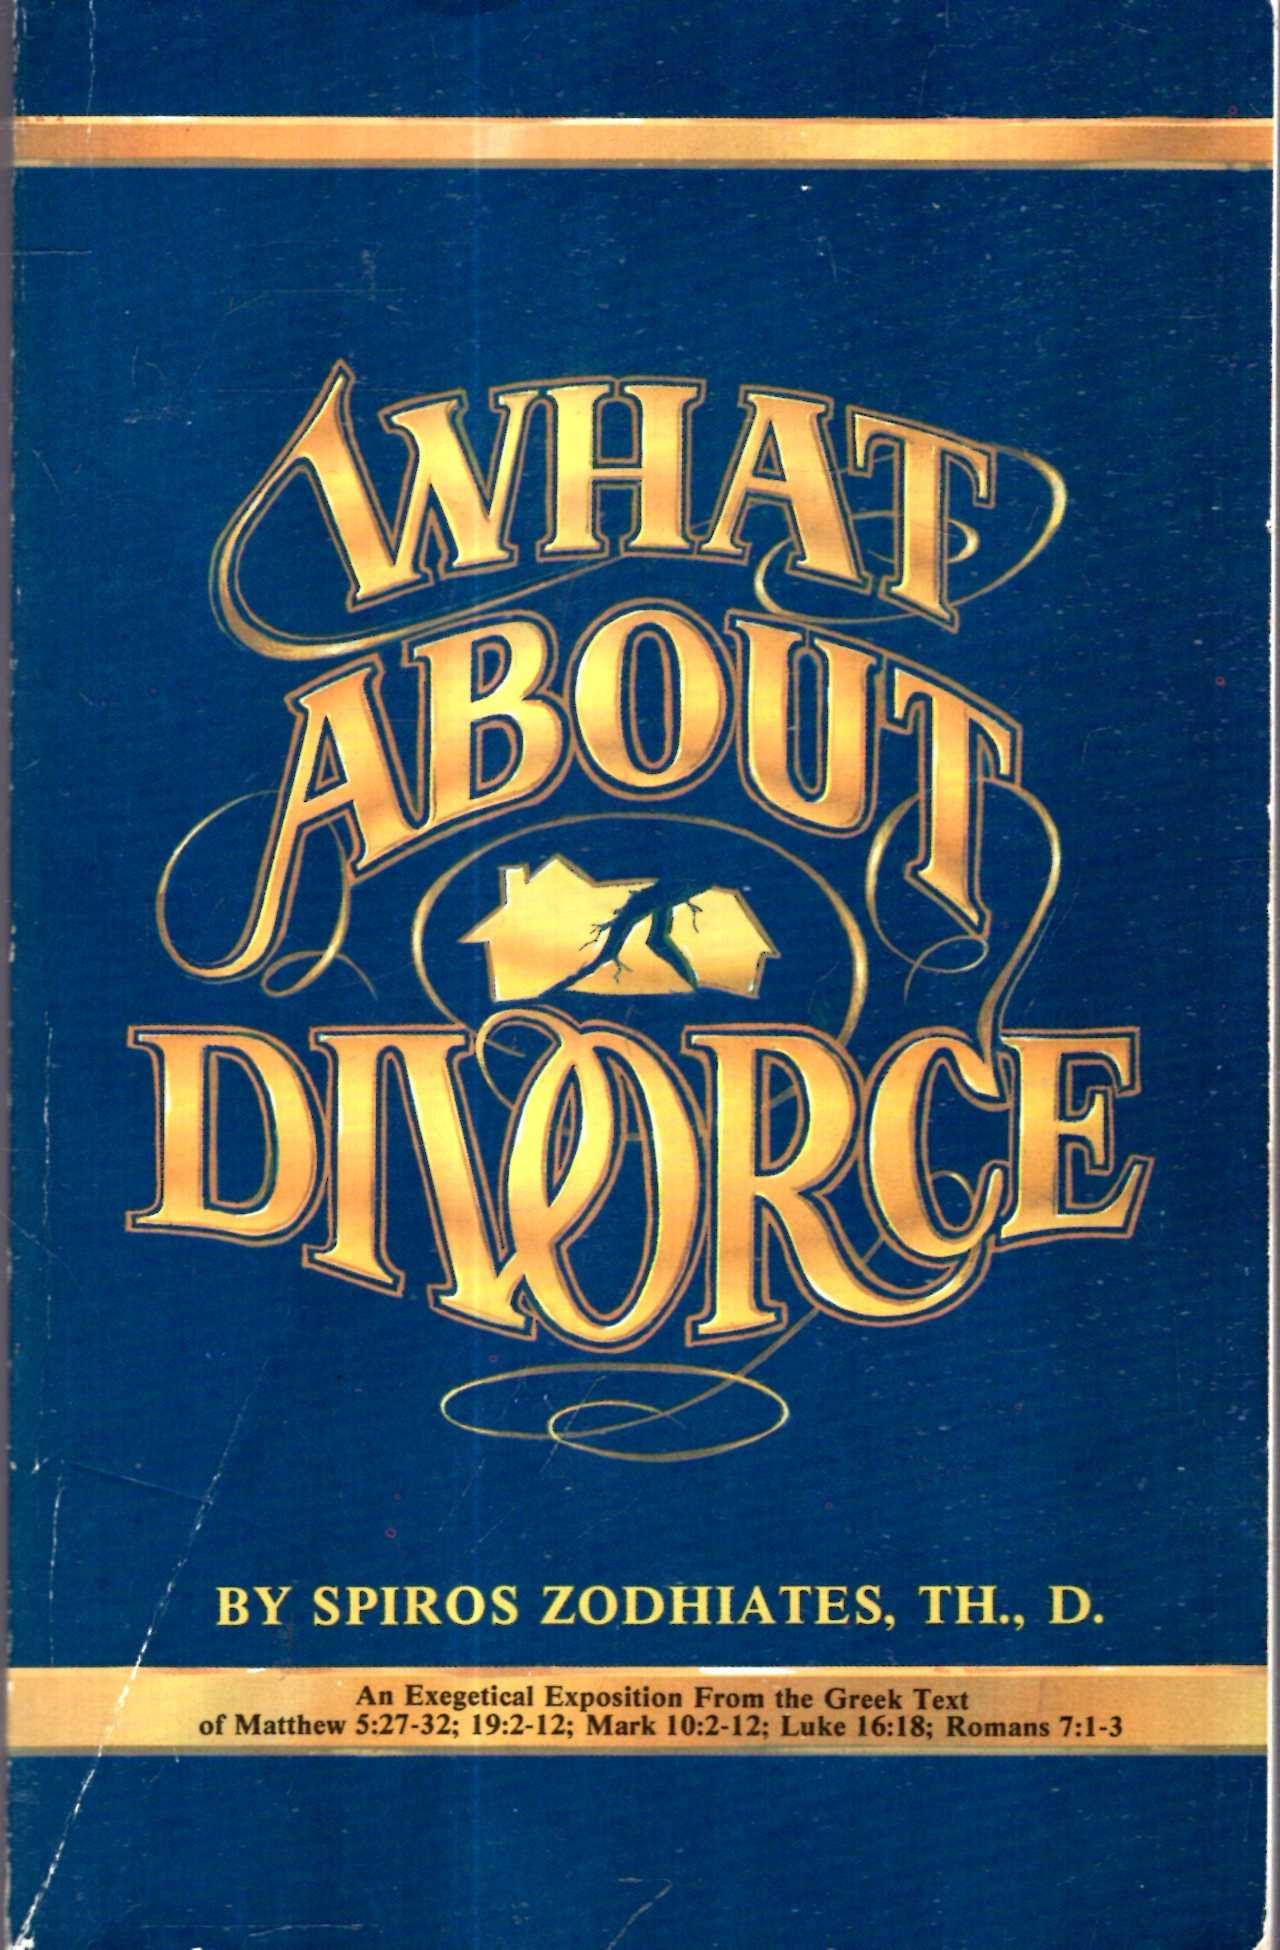 Image for What about Divorce? an exegetical study from the Greek text of Matthew, Mark, Luke & Romans